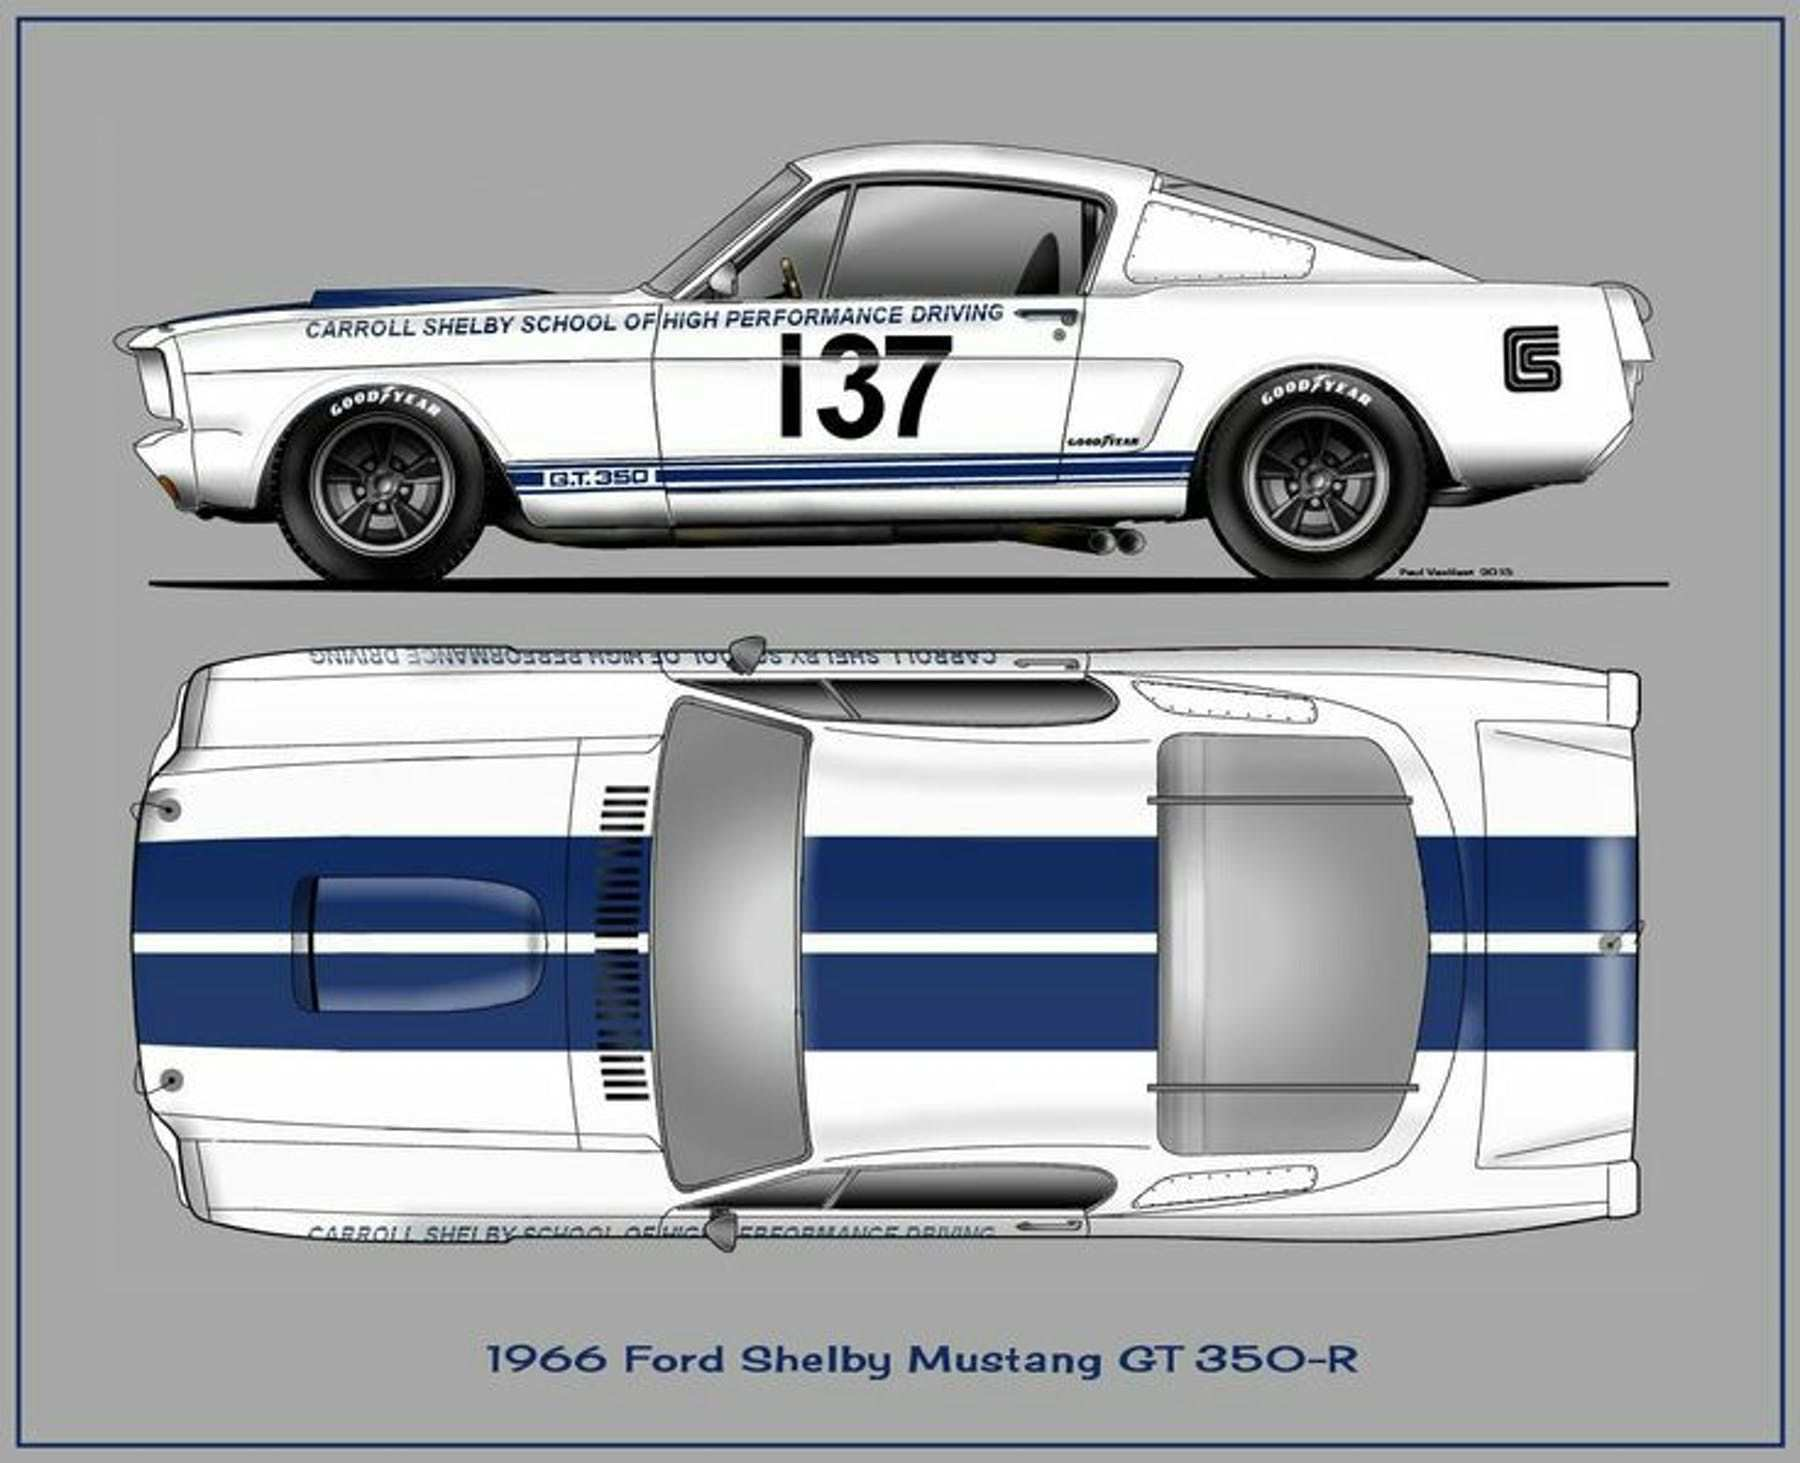 Shelby Gt 350 Shelby Gt Mustang Ford Shelby